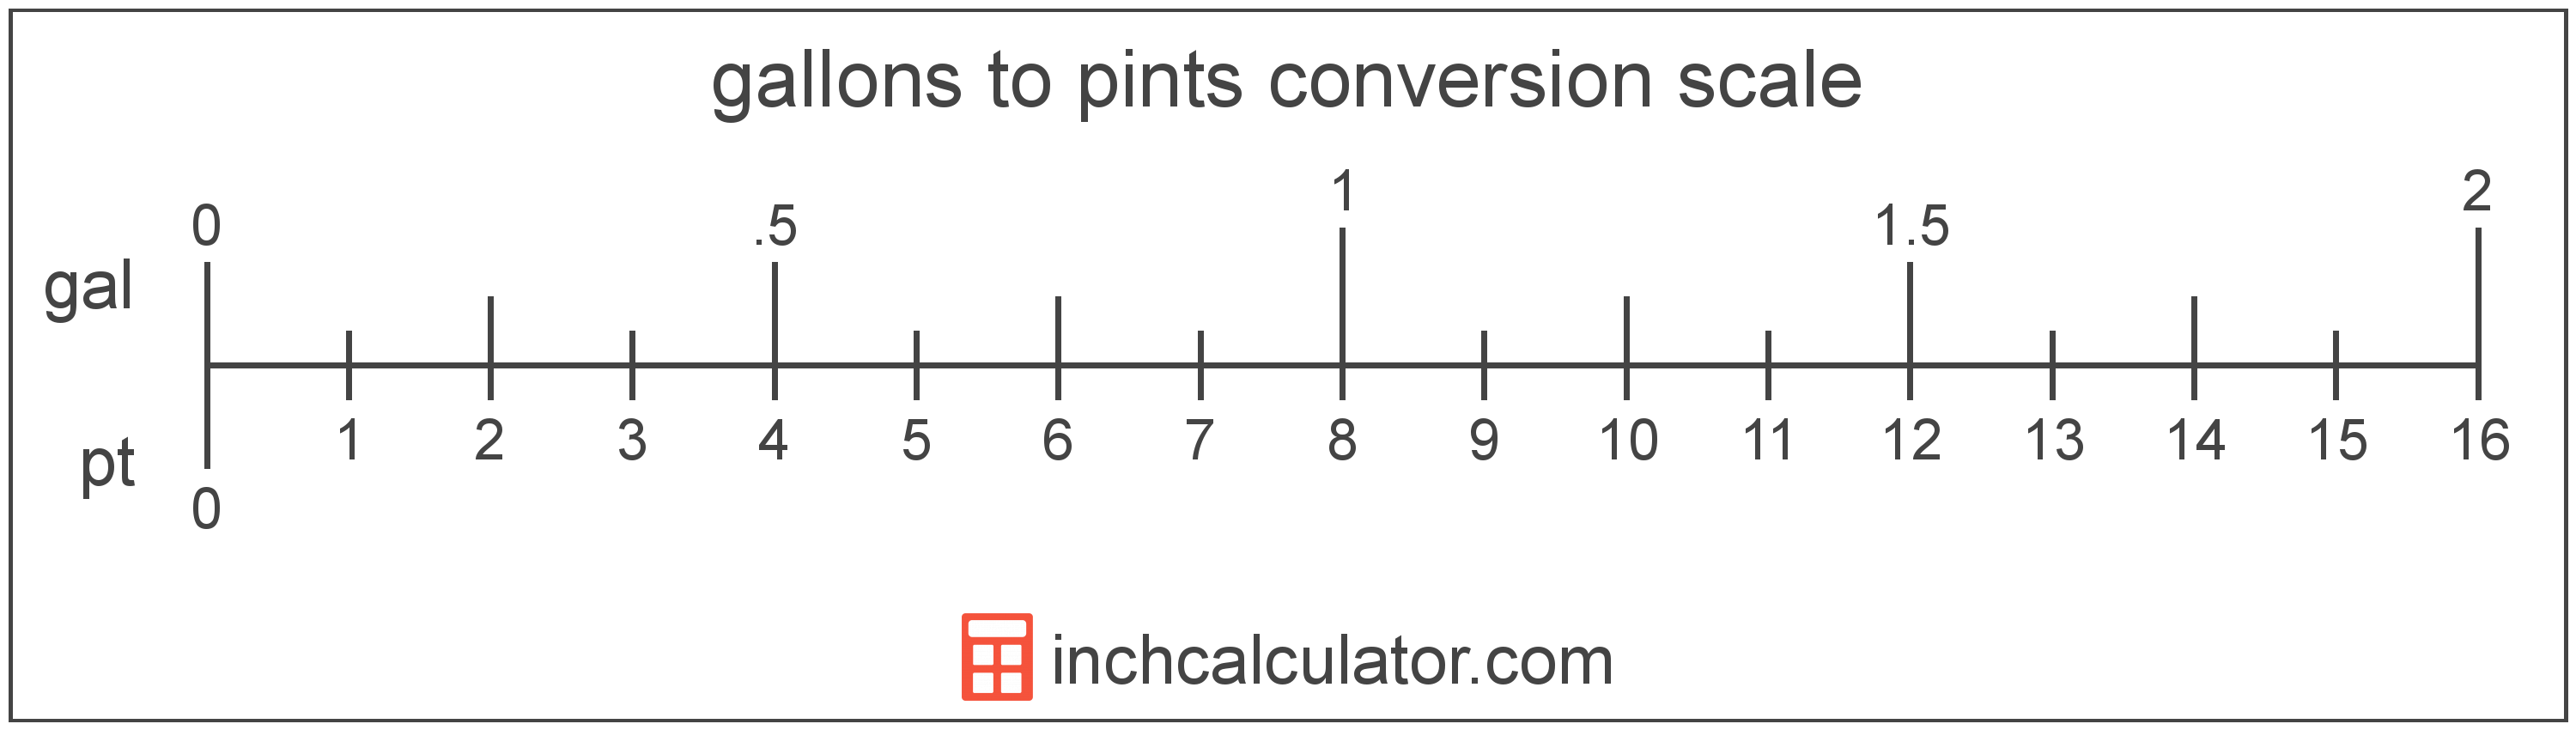 conversion scale showing gallons and equivalent pints volume values